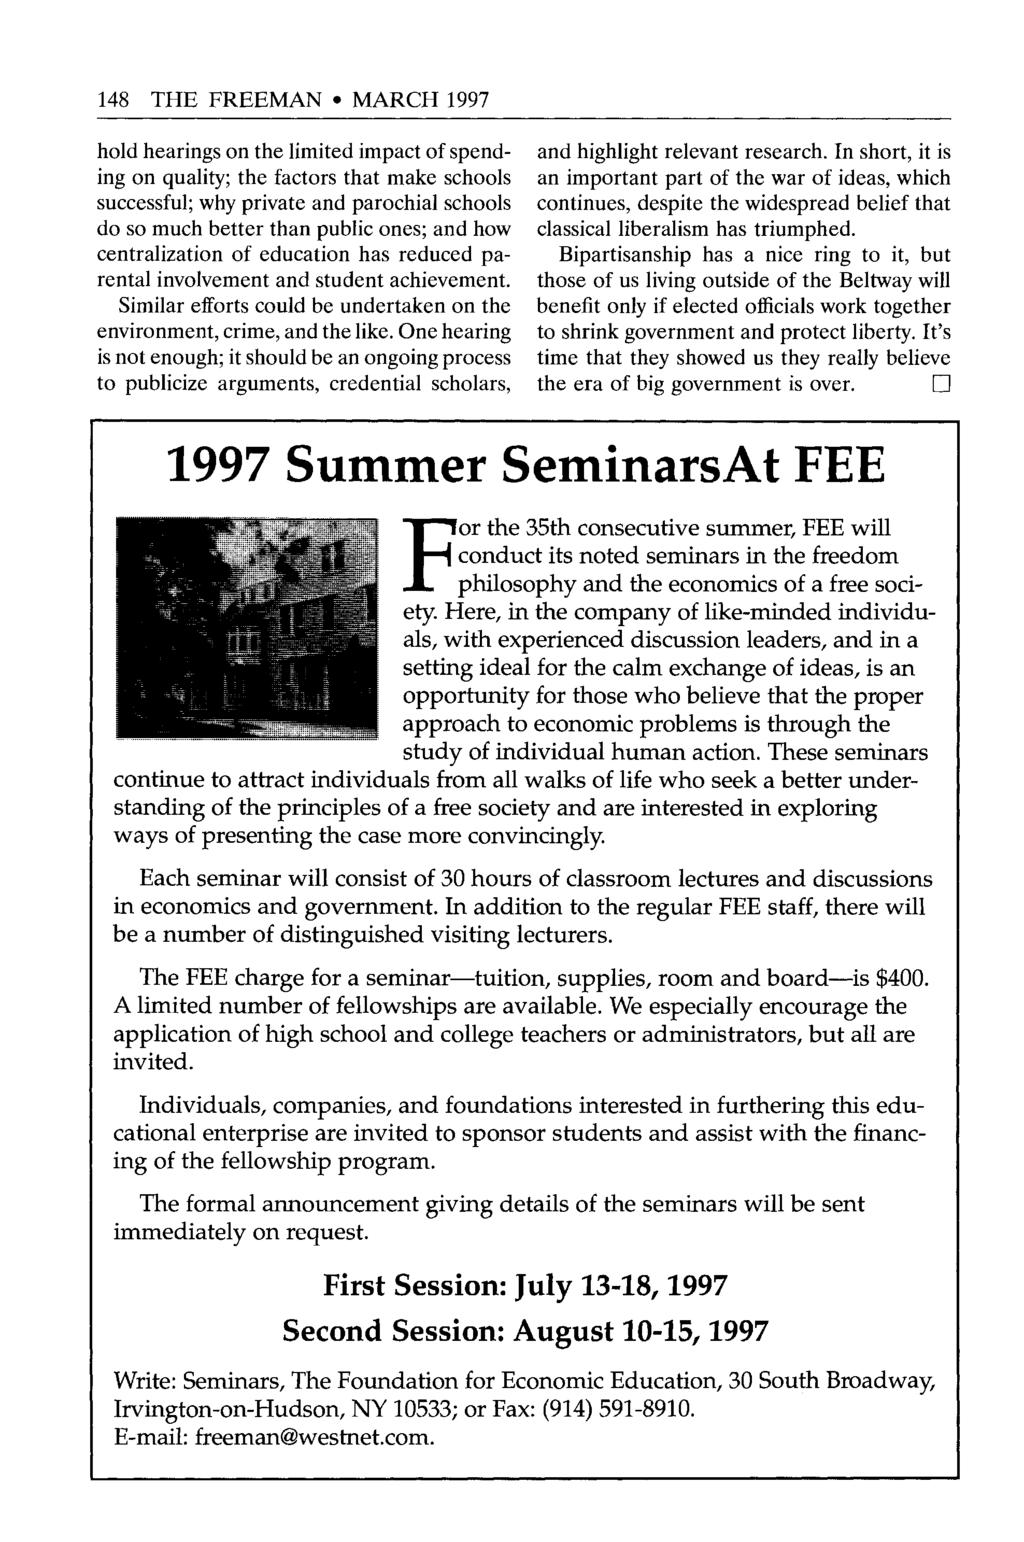 148 THE FREEMAN MARCH 1997 hold hearings on the limited impact of spending on quality; the factors that make schools successful; why private and parochial schools do so much better than public ones;